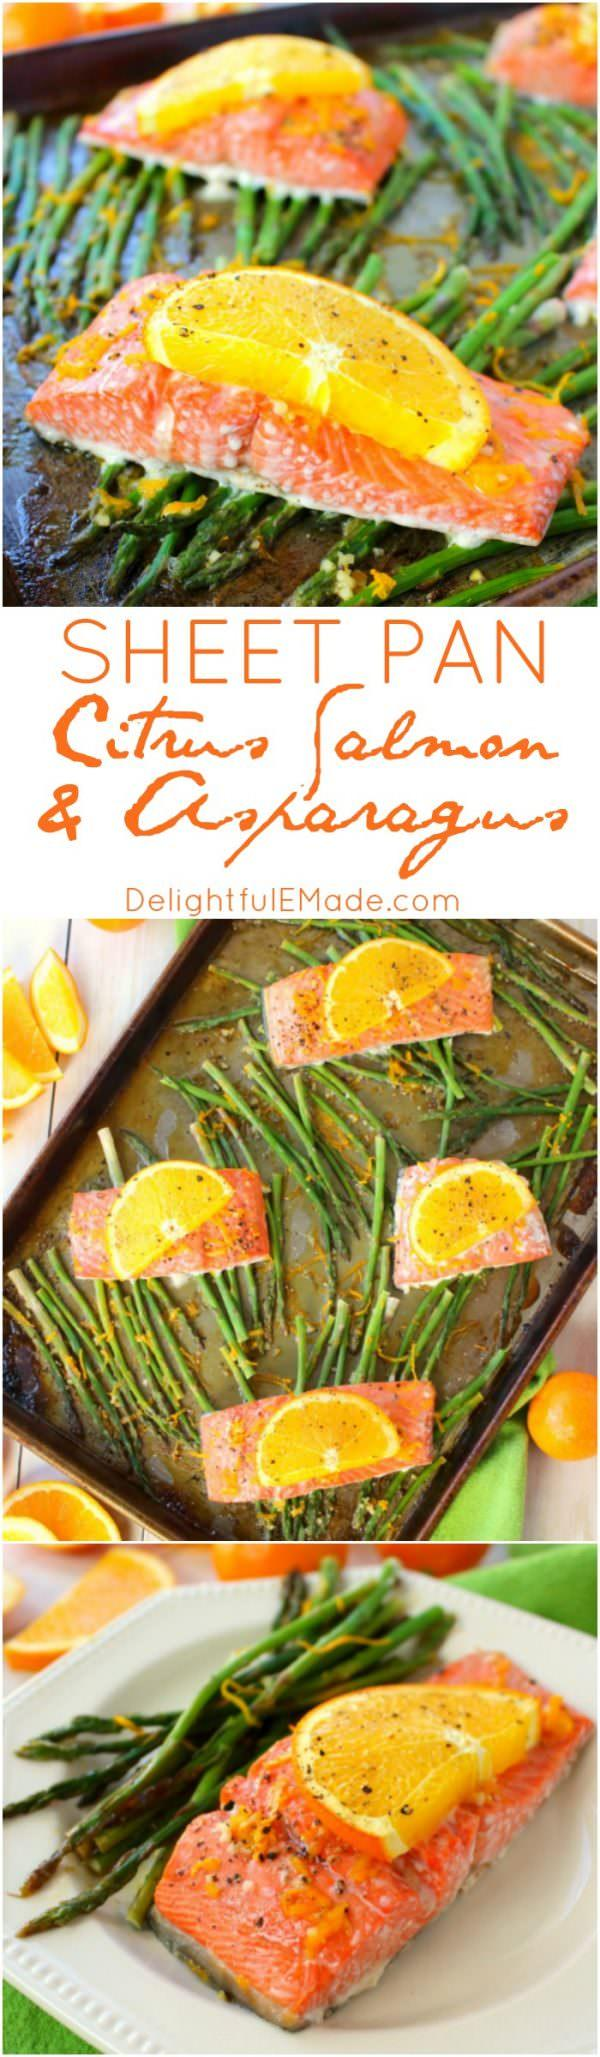 Vegetable Recipes For Kids || Kid Friendly Vegetable Recipes. This Sheet Pan Citrus Salmon and Asparagus recipe has a delightful glaze of orange, lemon & lime. The salmon is roasted with the asparagus for easy cleanup!